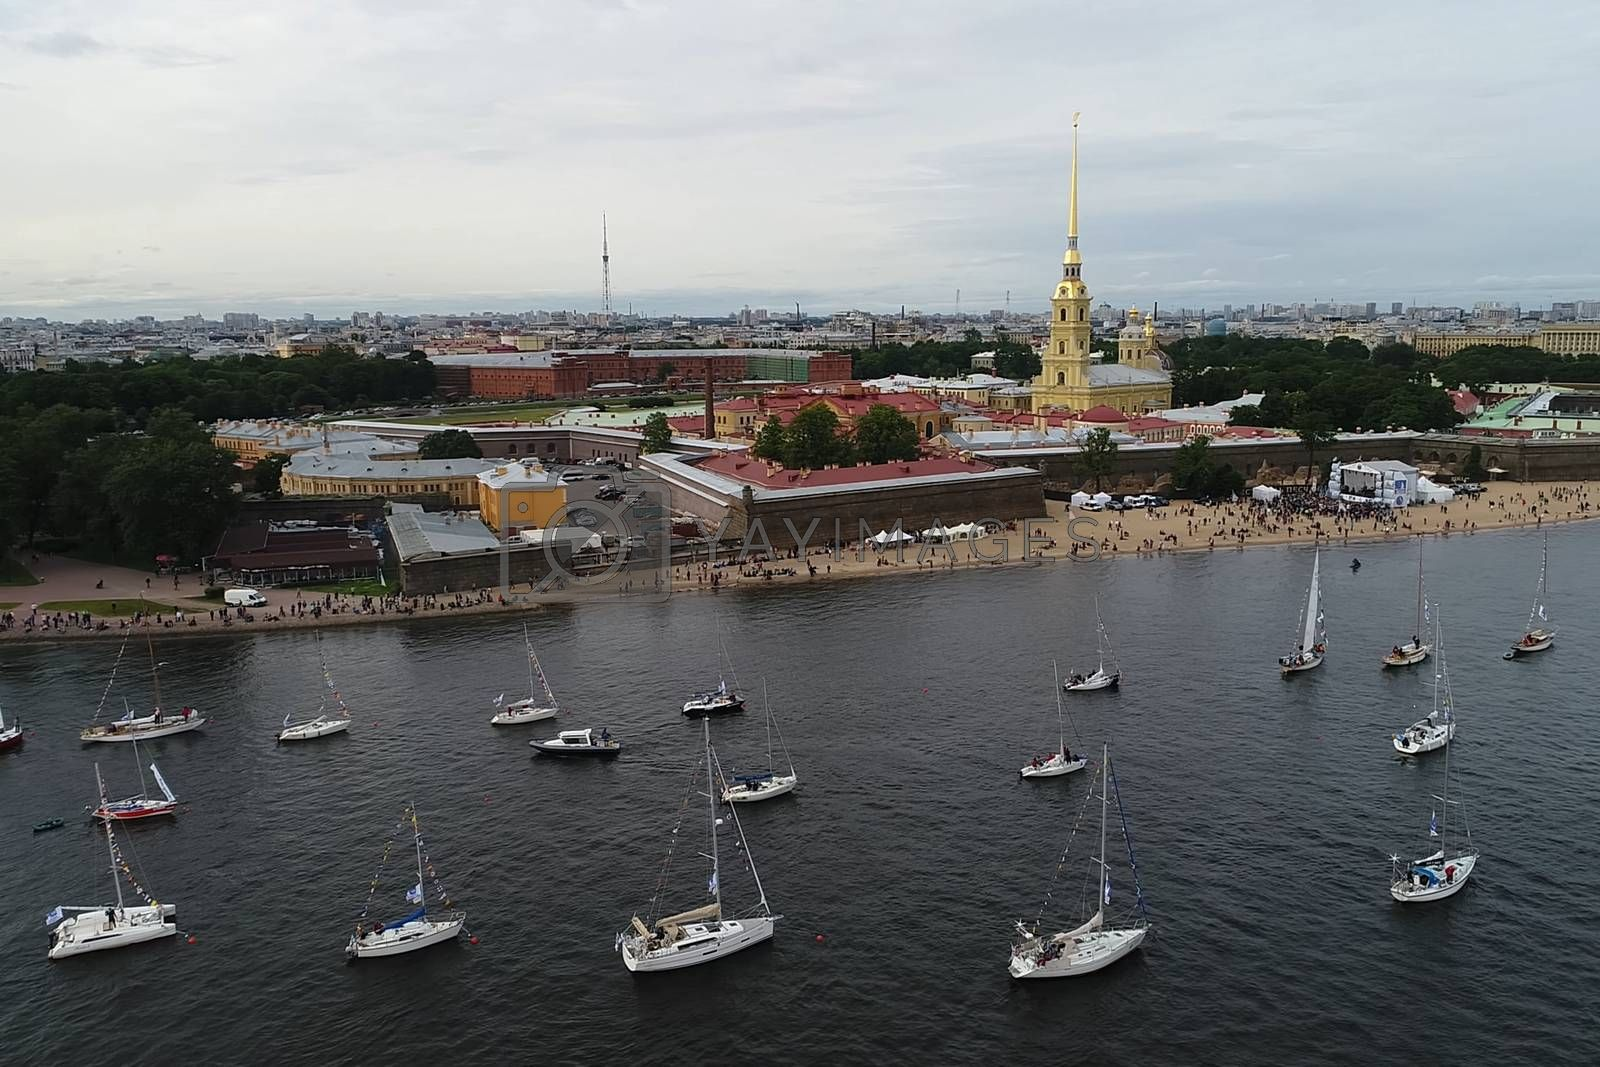 Festival of yachts in St. Petersburg on the river neve. Sailing yachts in the river by Nirkov